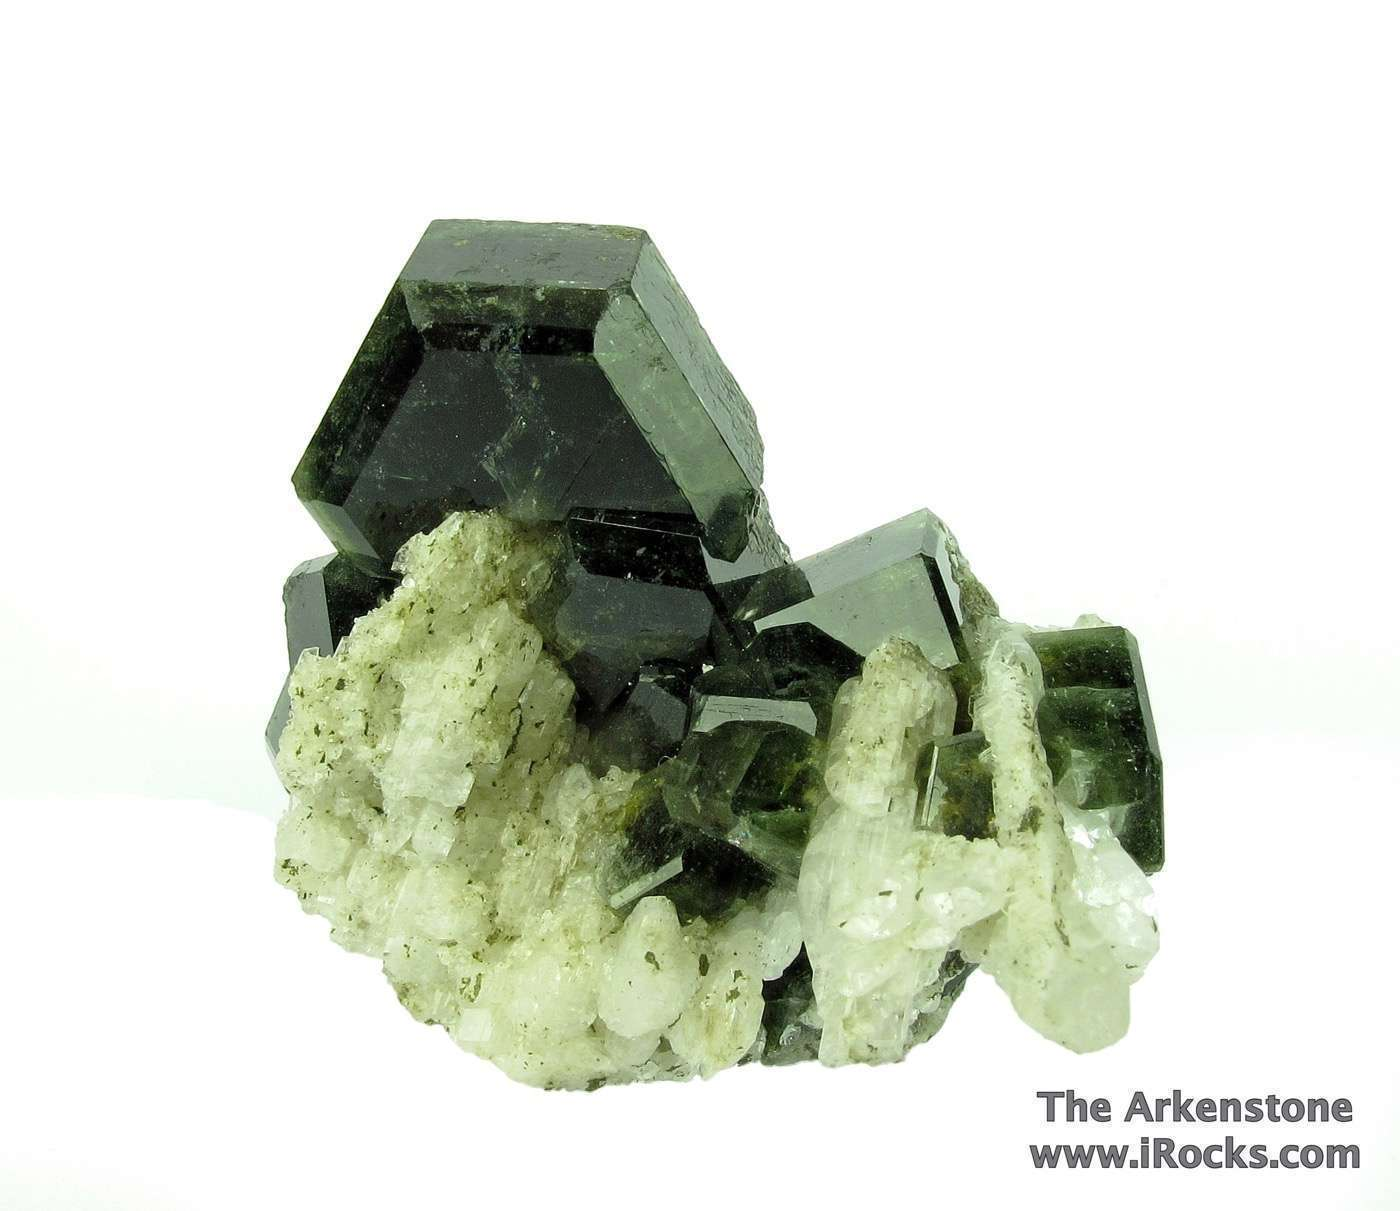 Excellent cluster sharp attractive Fluorapatite crystals nicely placed